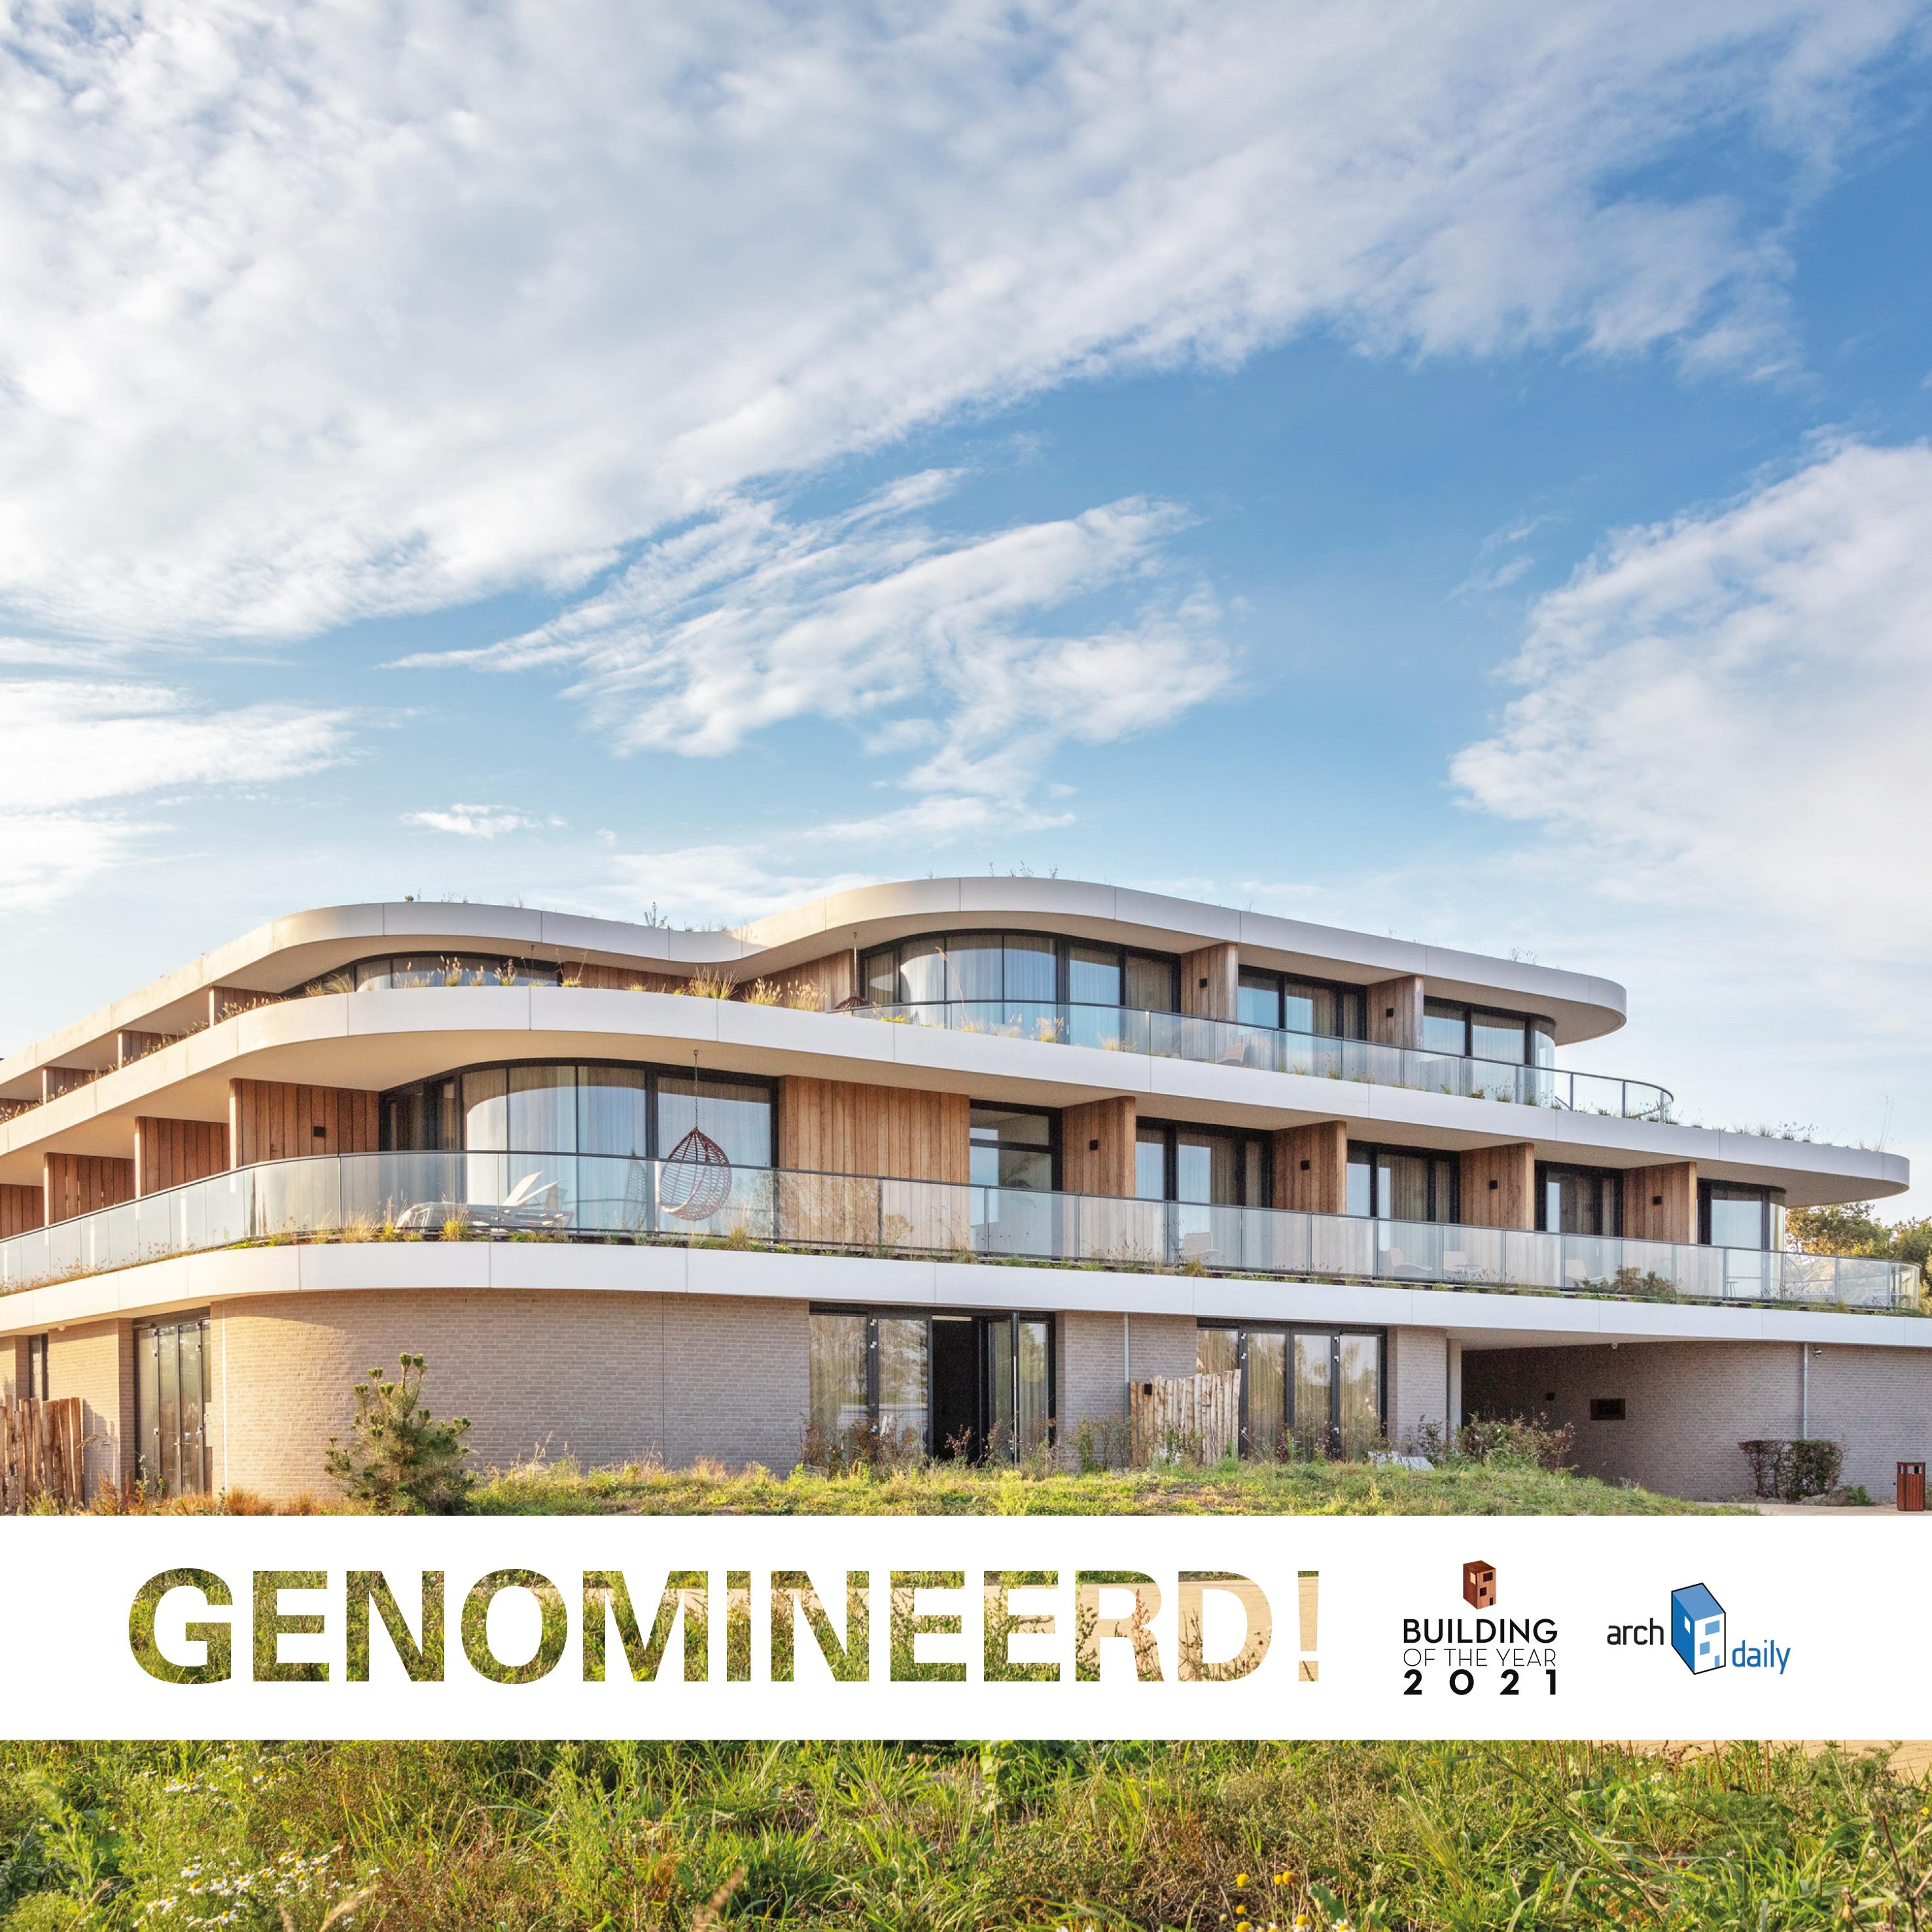 building of the year - duinhotel breezand3